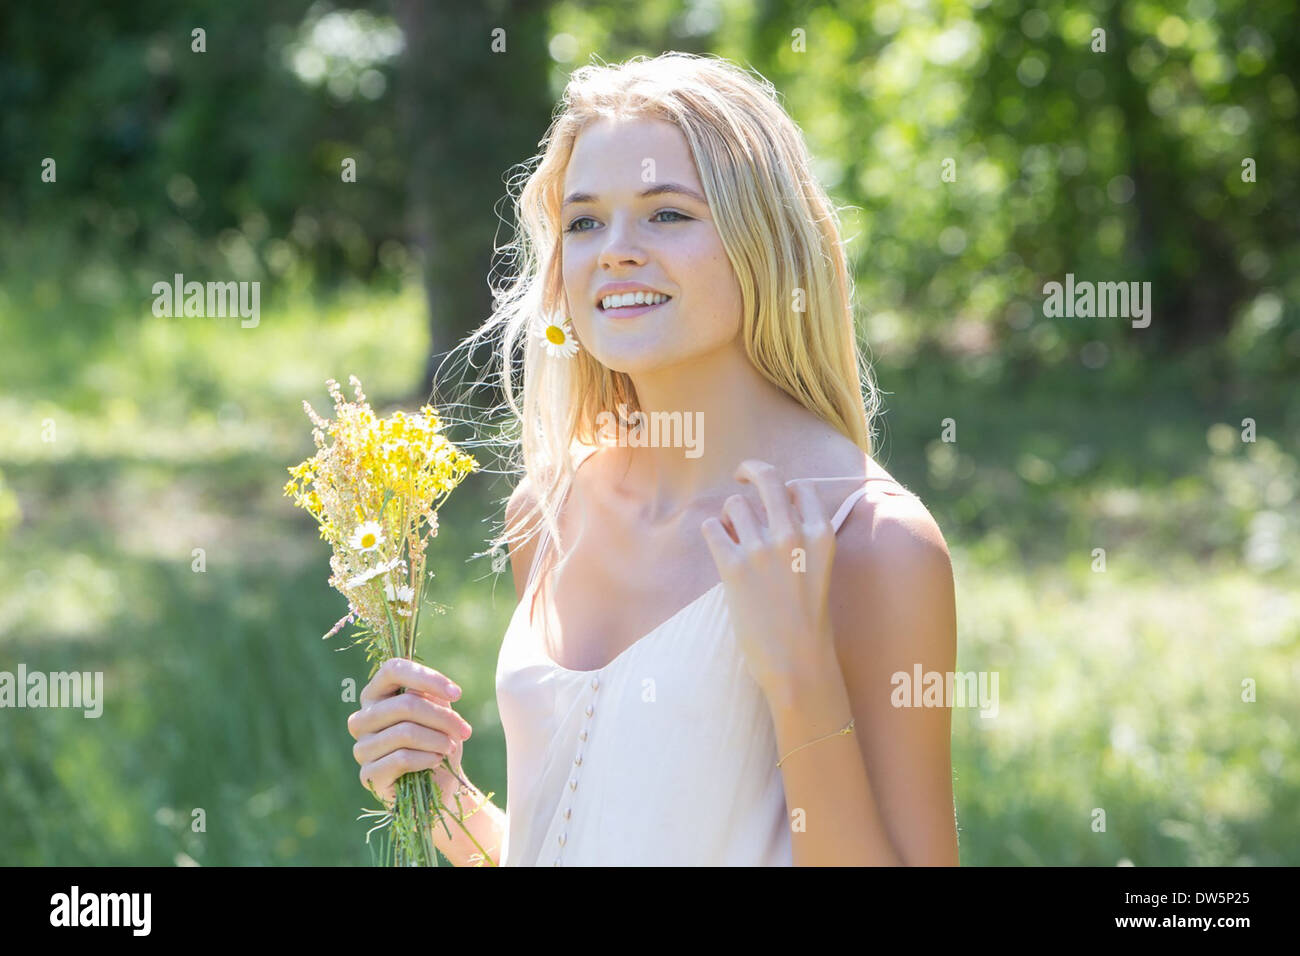 Gabriella Wilde Stock Photos & Gabriella Wilde Stock ...